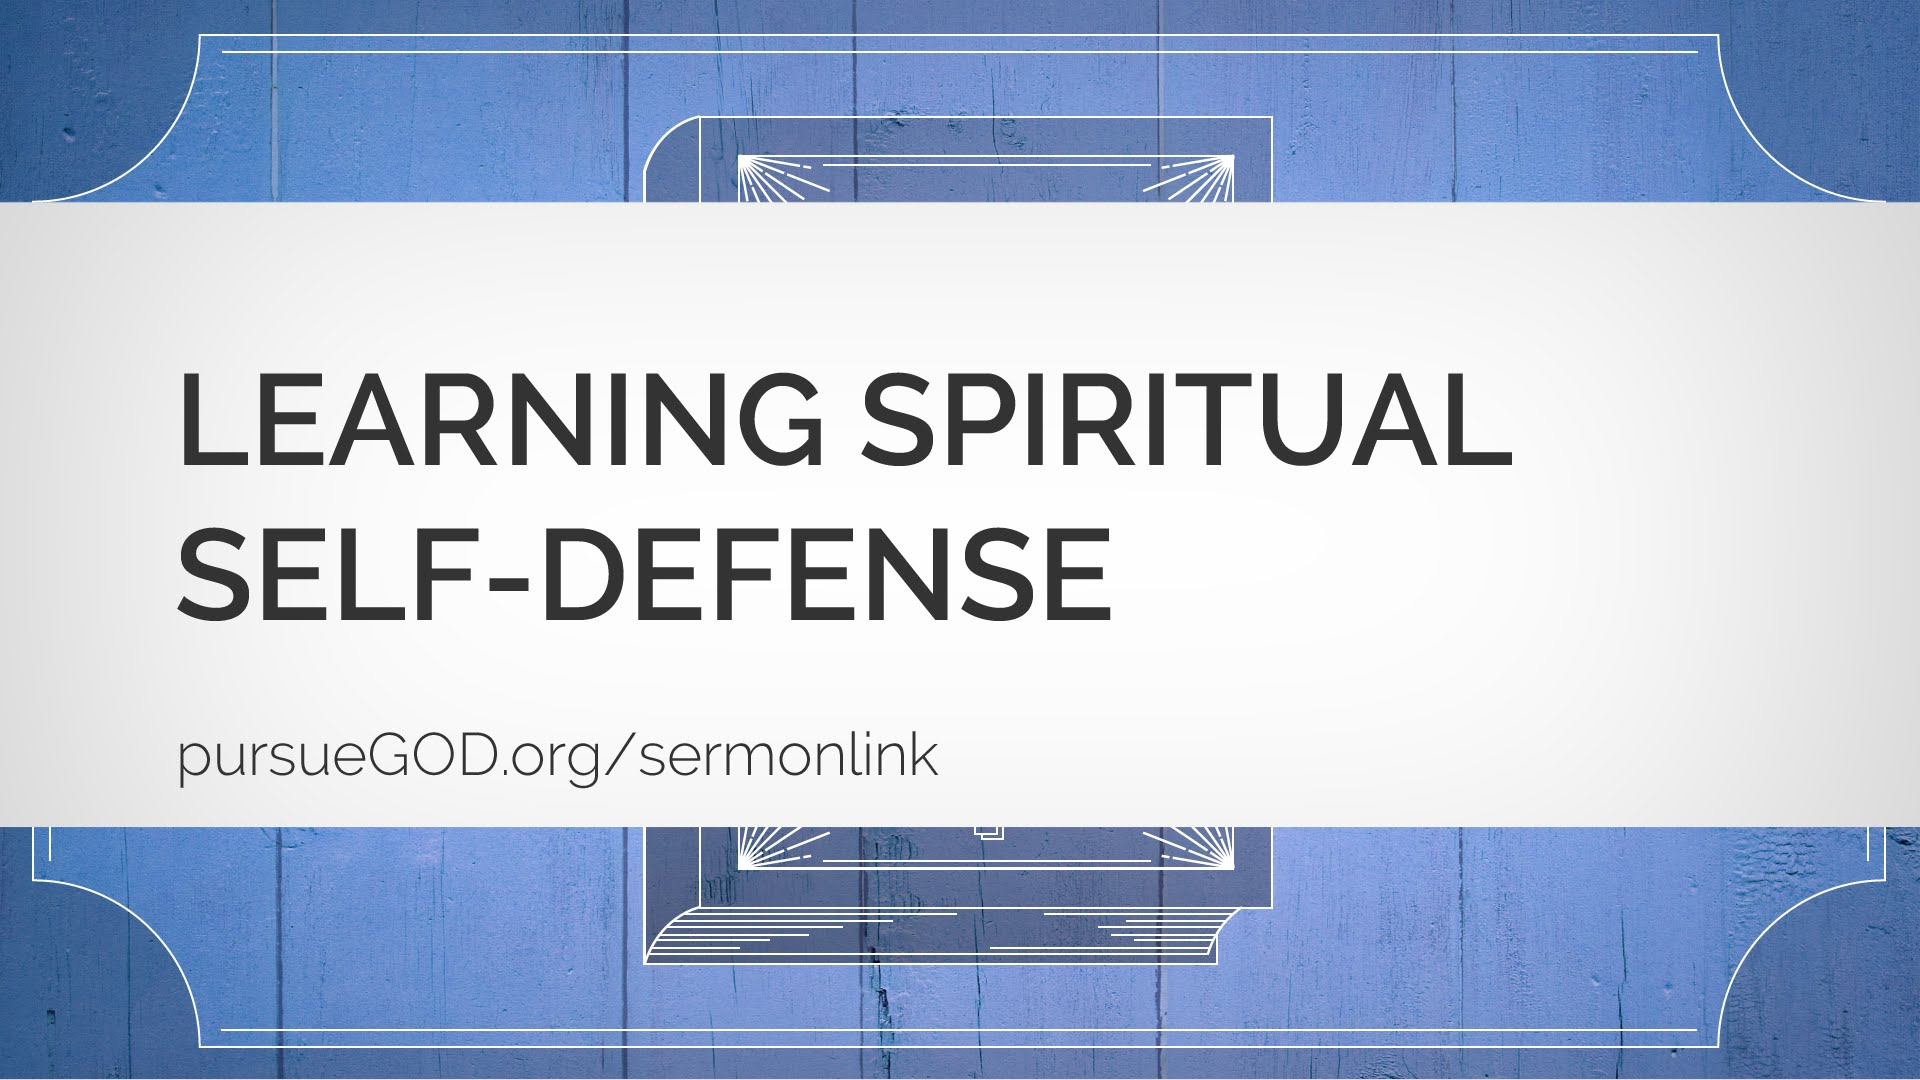 The Book of Jude #2: Learning Spiritual Self-Defense